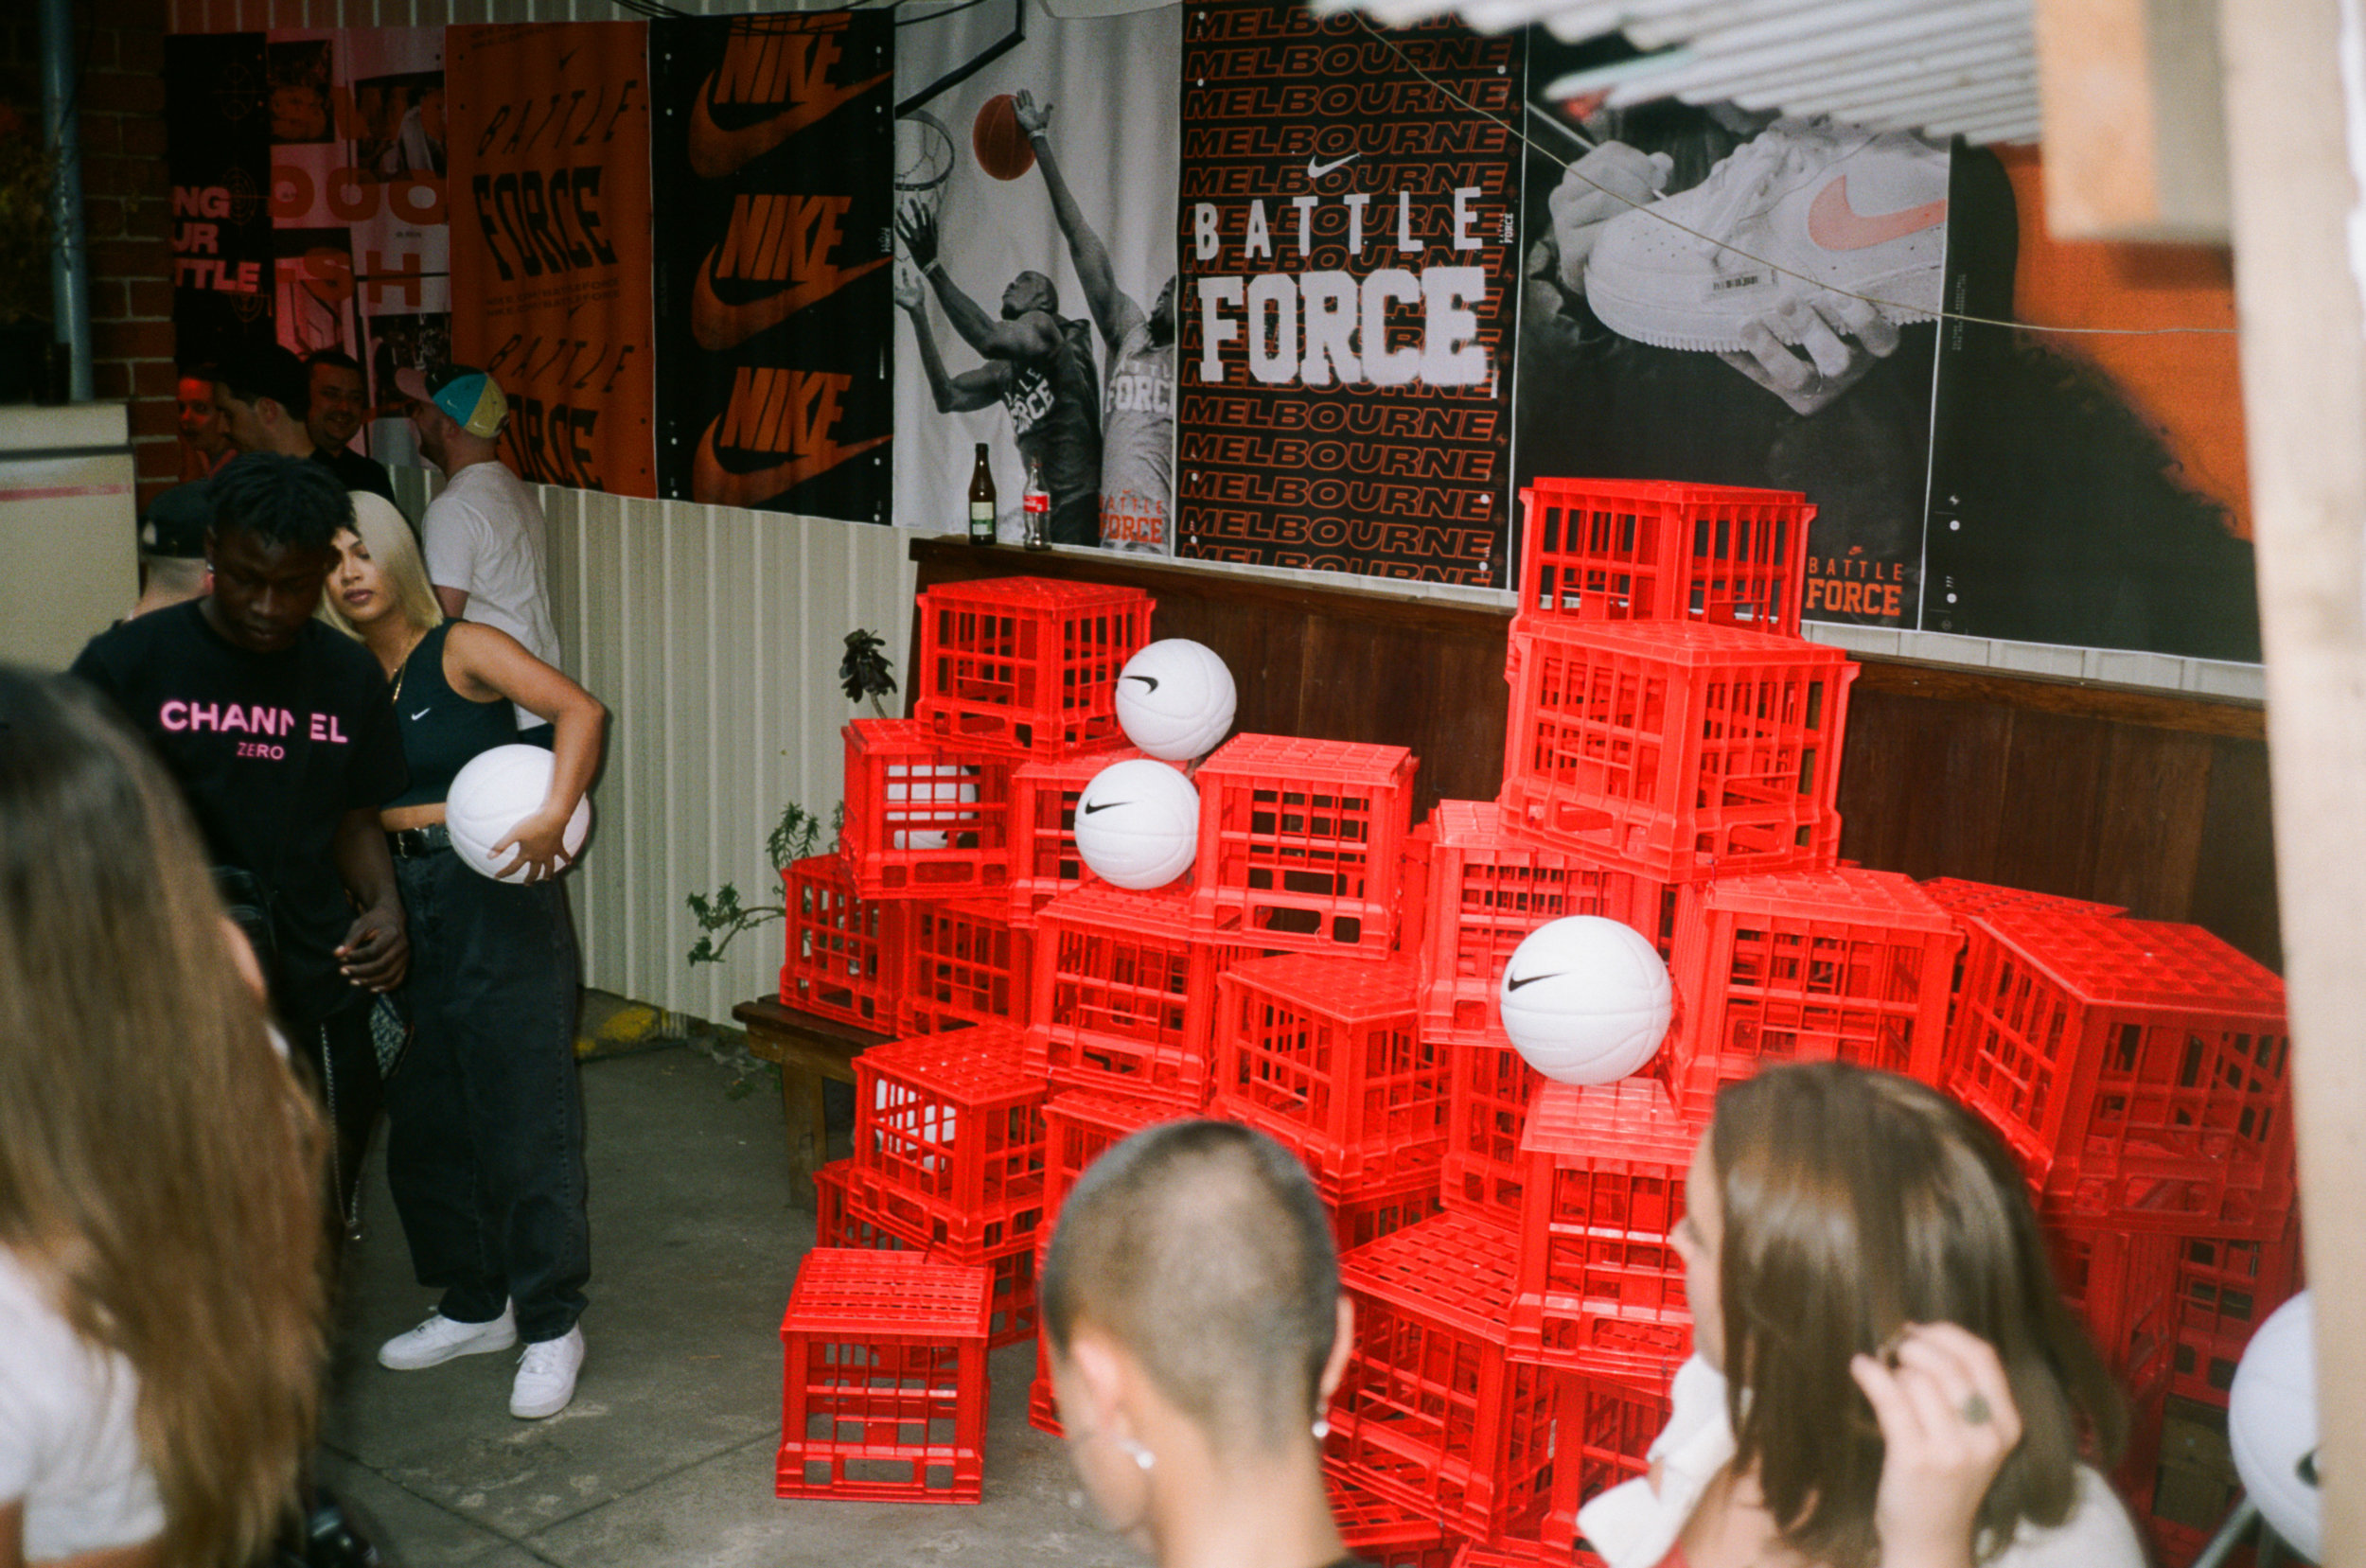 nikebattleforce_35mm_chrisloutfy-41.jpg